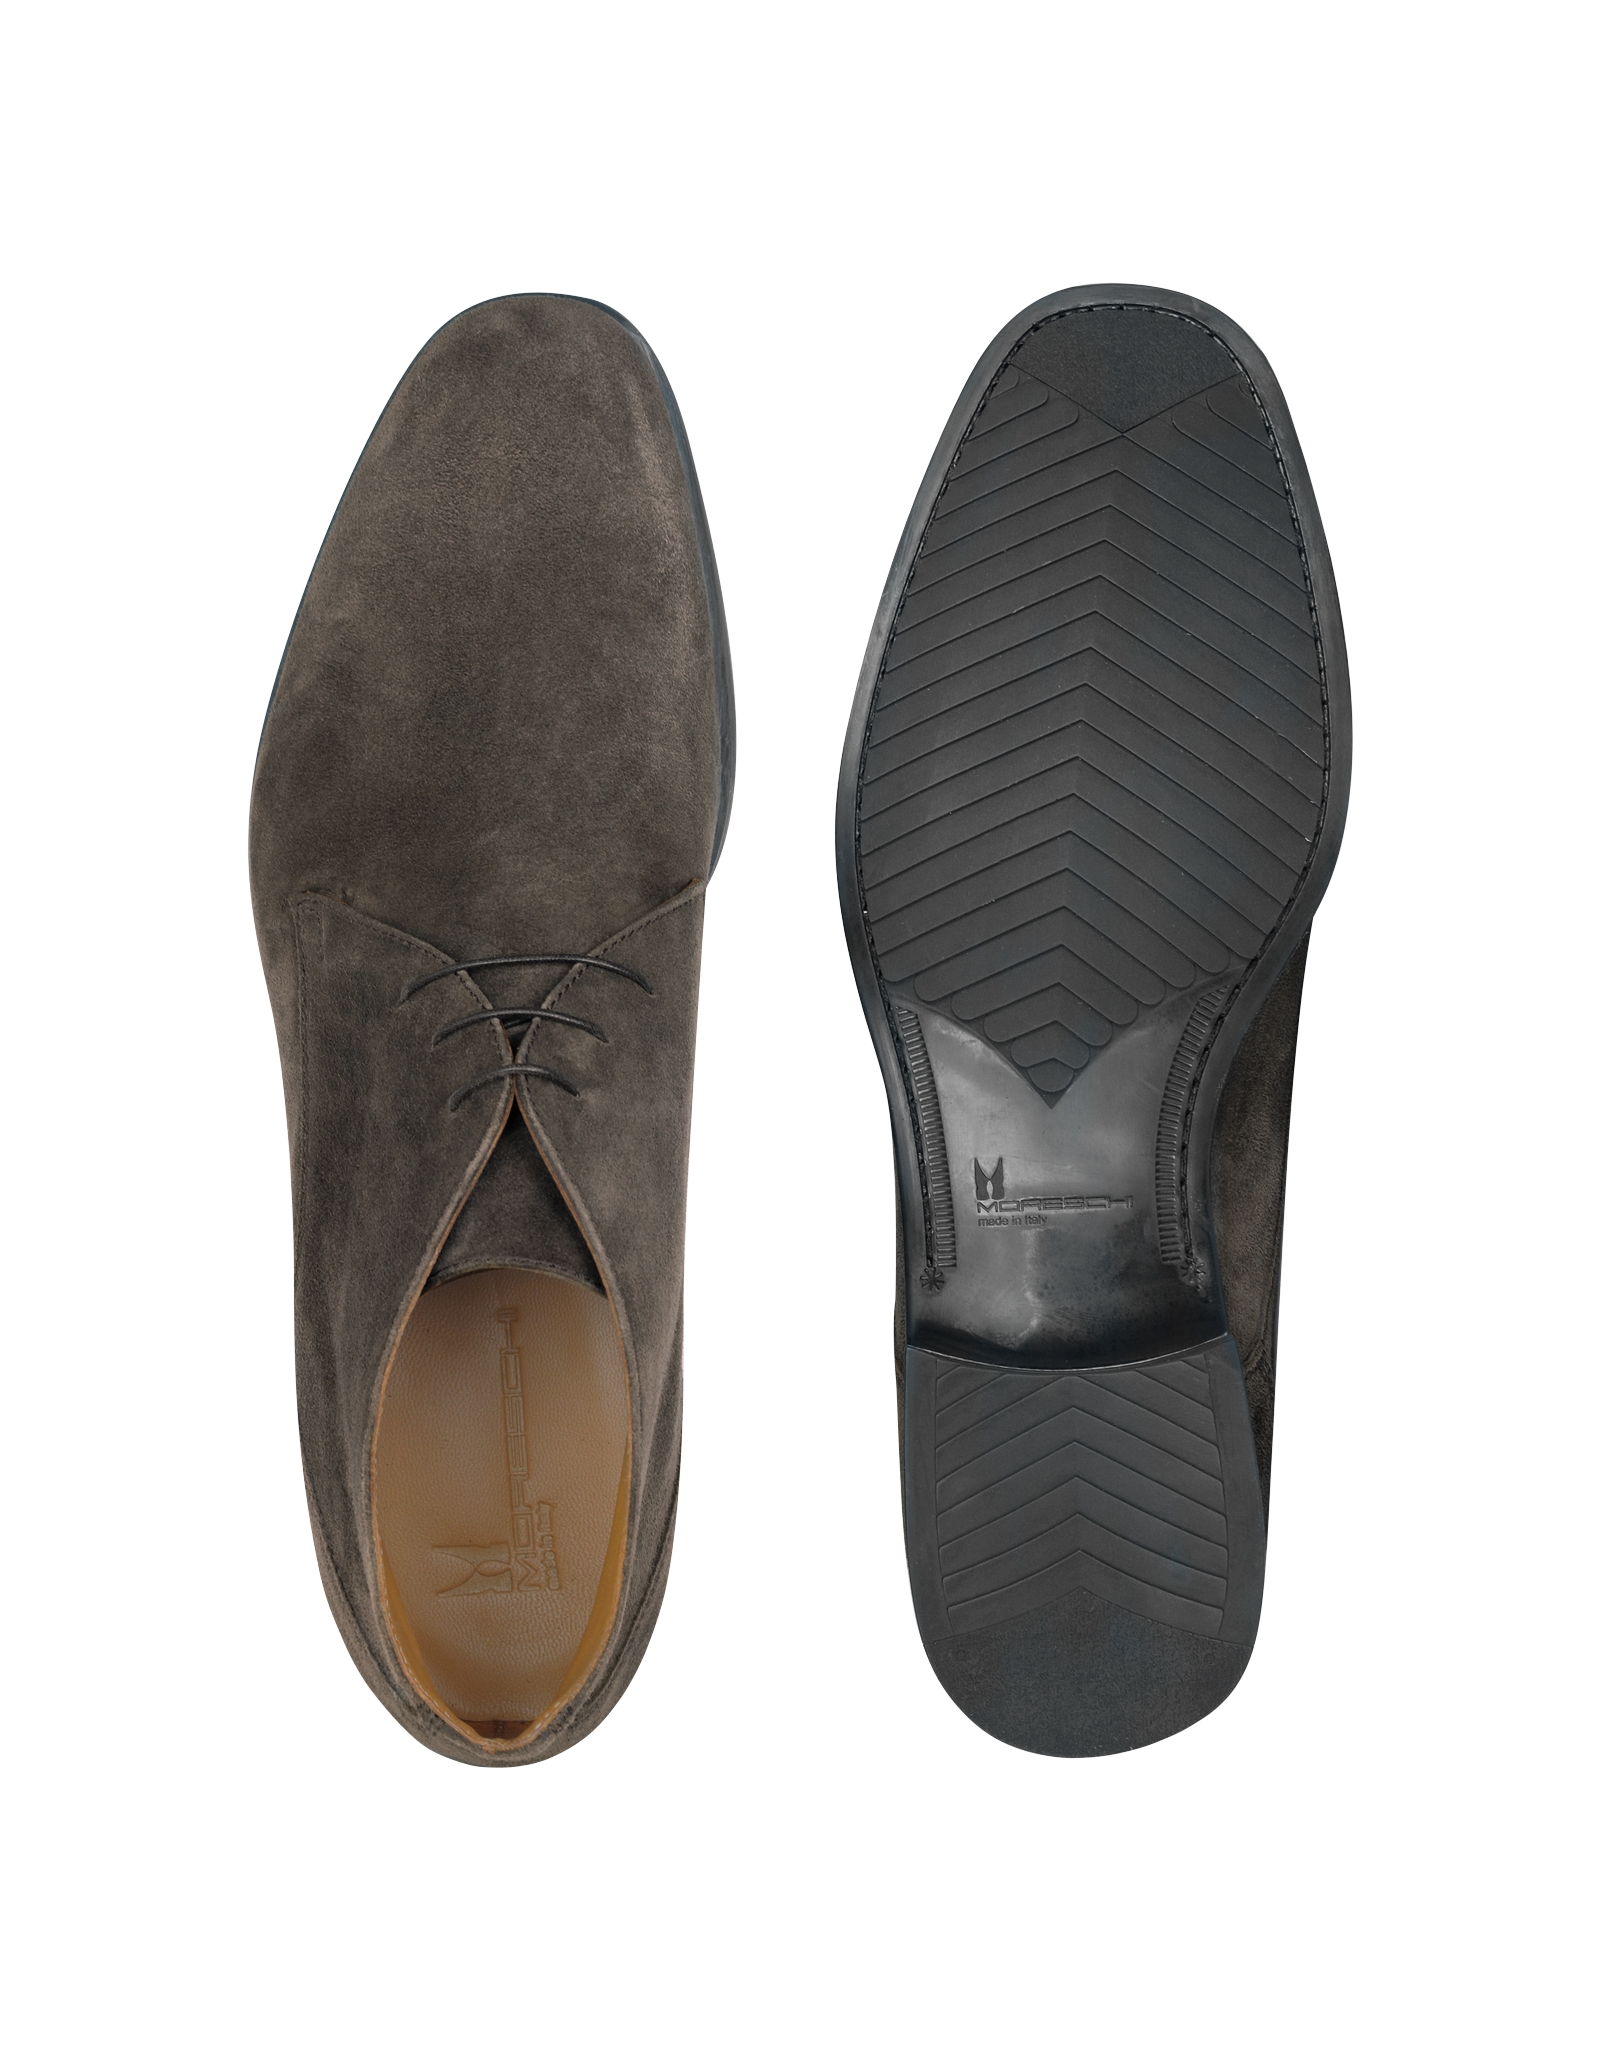 Moreschi Stiria Gray Suede Ankle Boots In Gray For Men